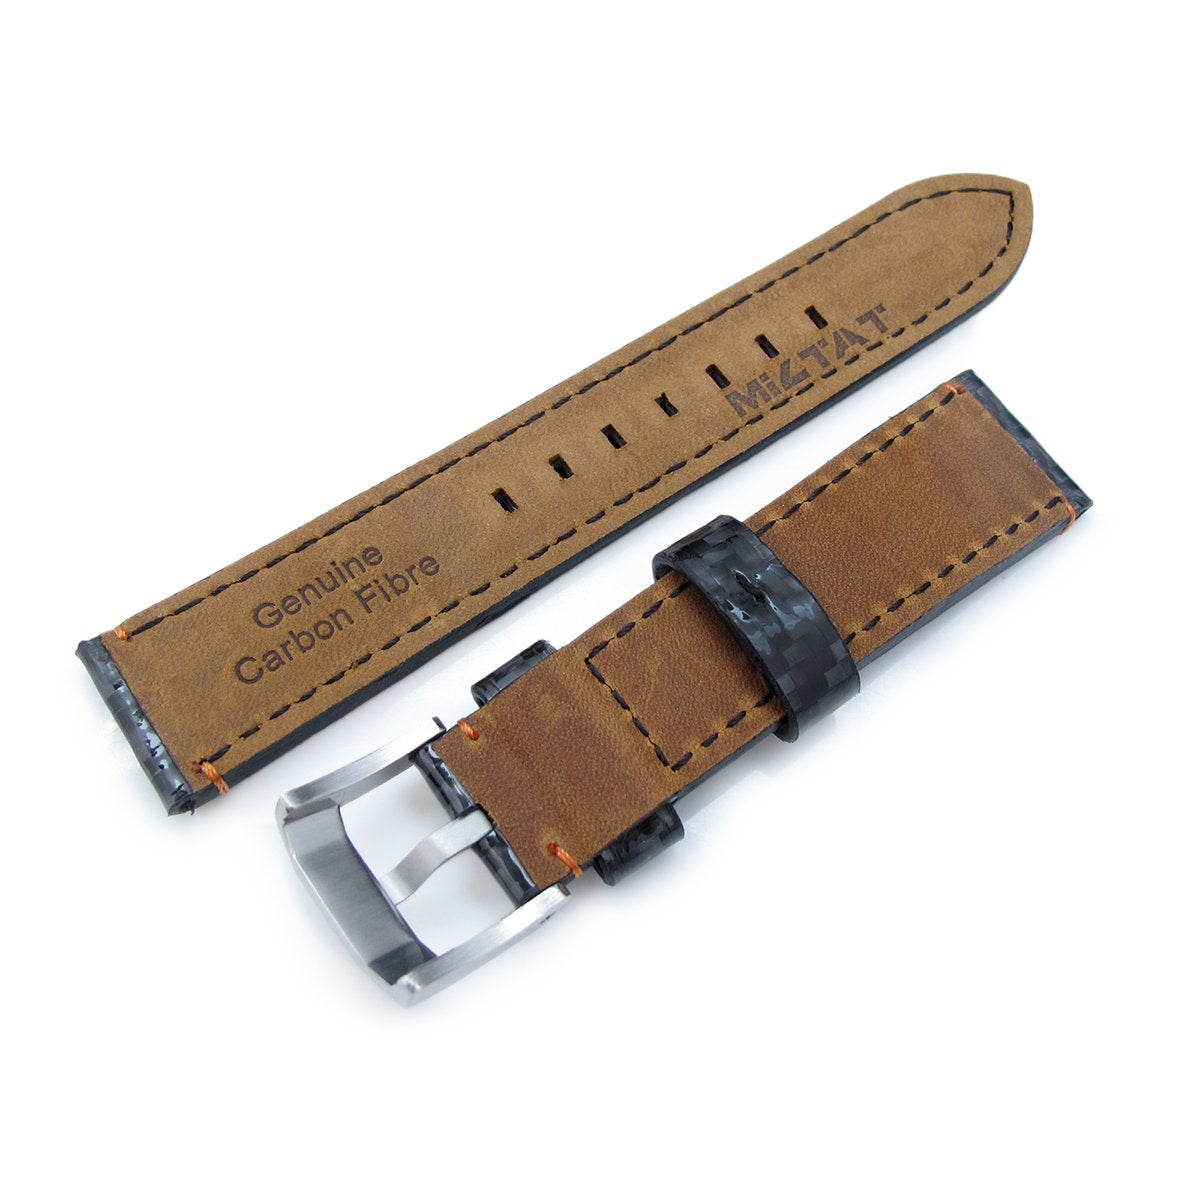 20mm 21mm MiLTAT Glossy Genuine Carbon Fiber Watch Band Orange Stitching XL Strapcode Watch Bands